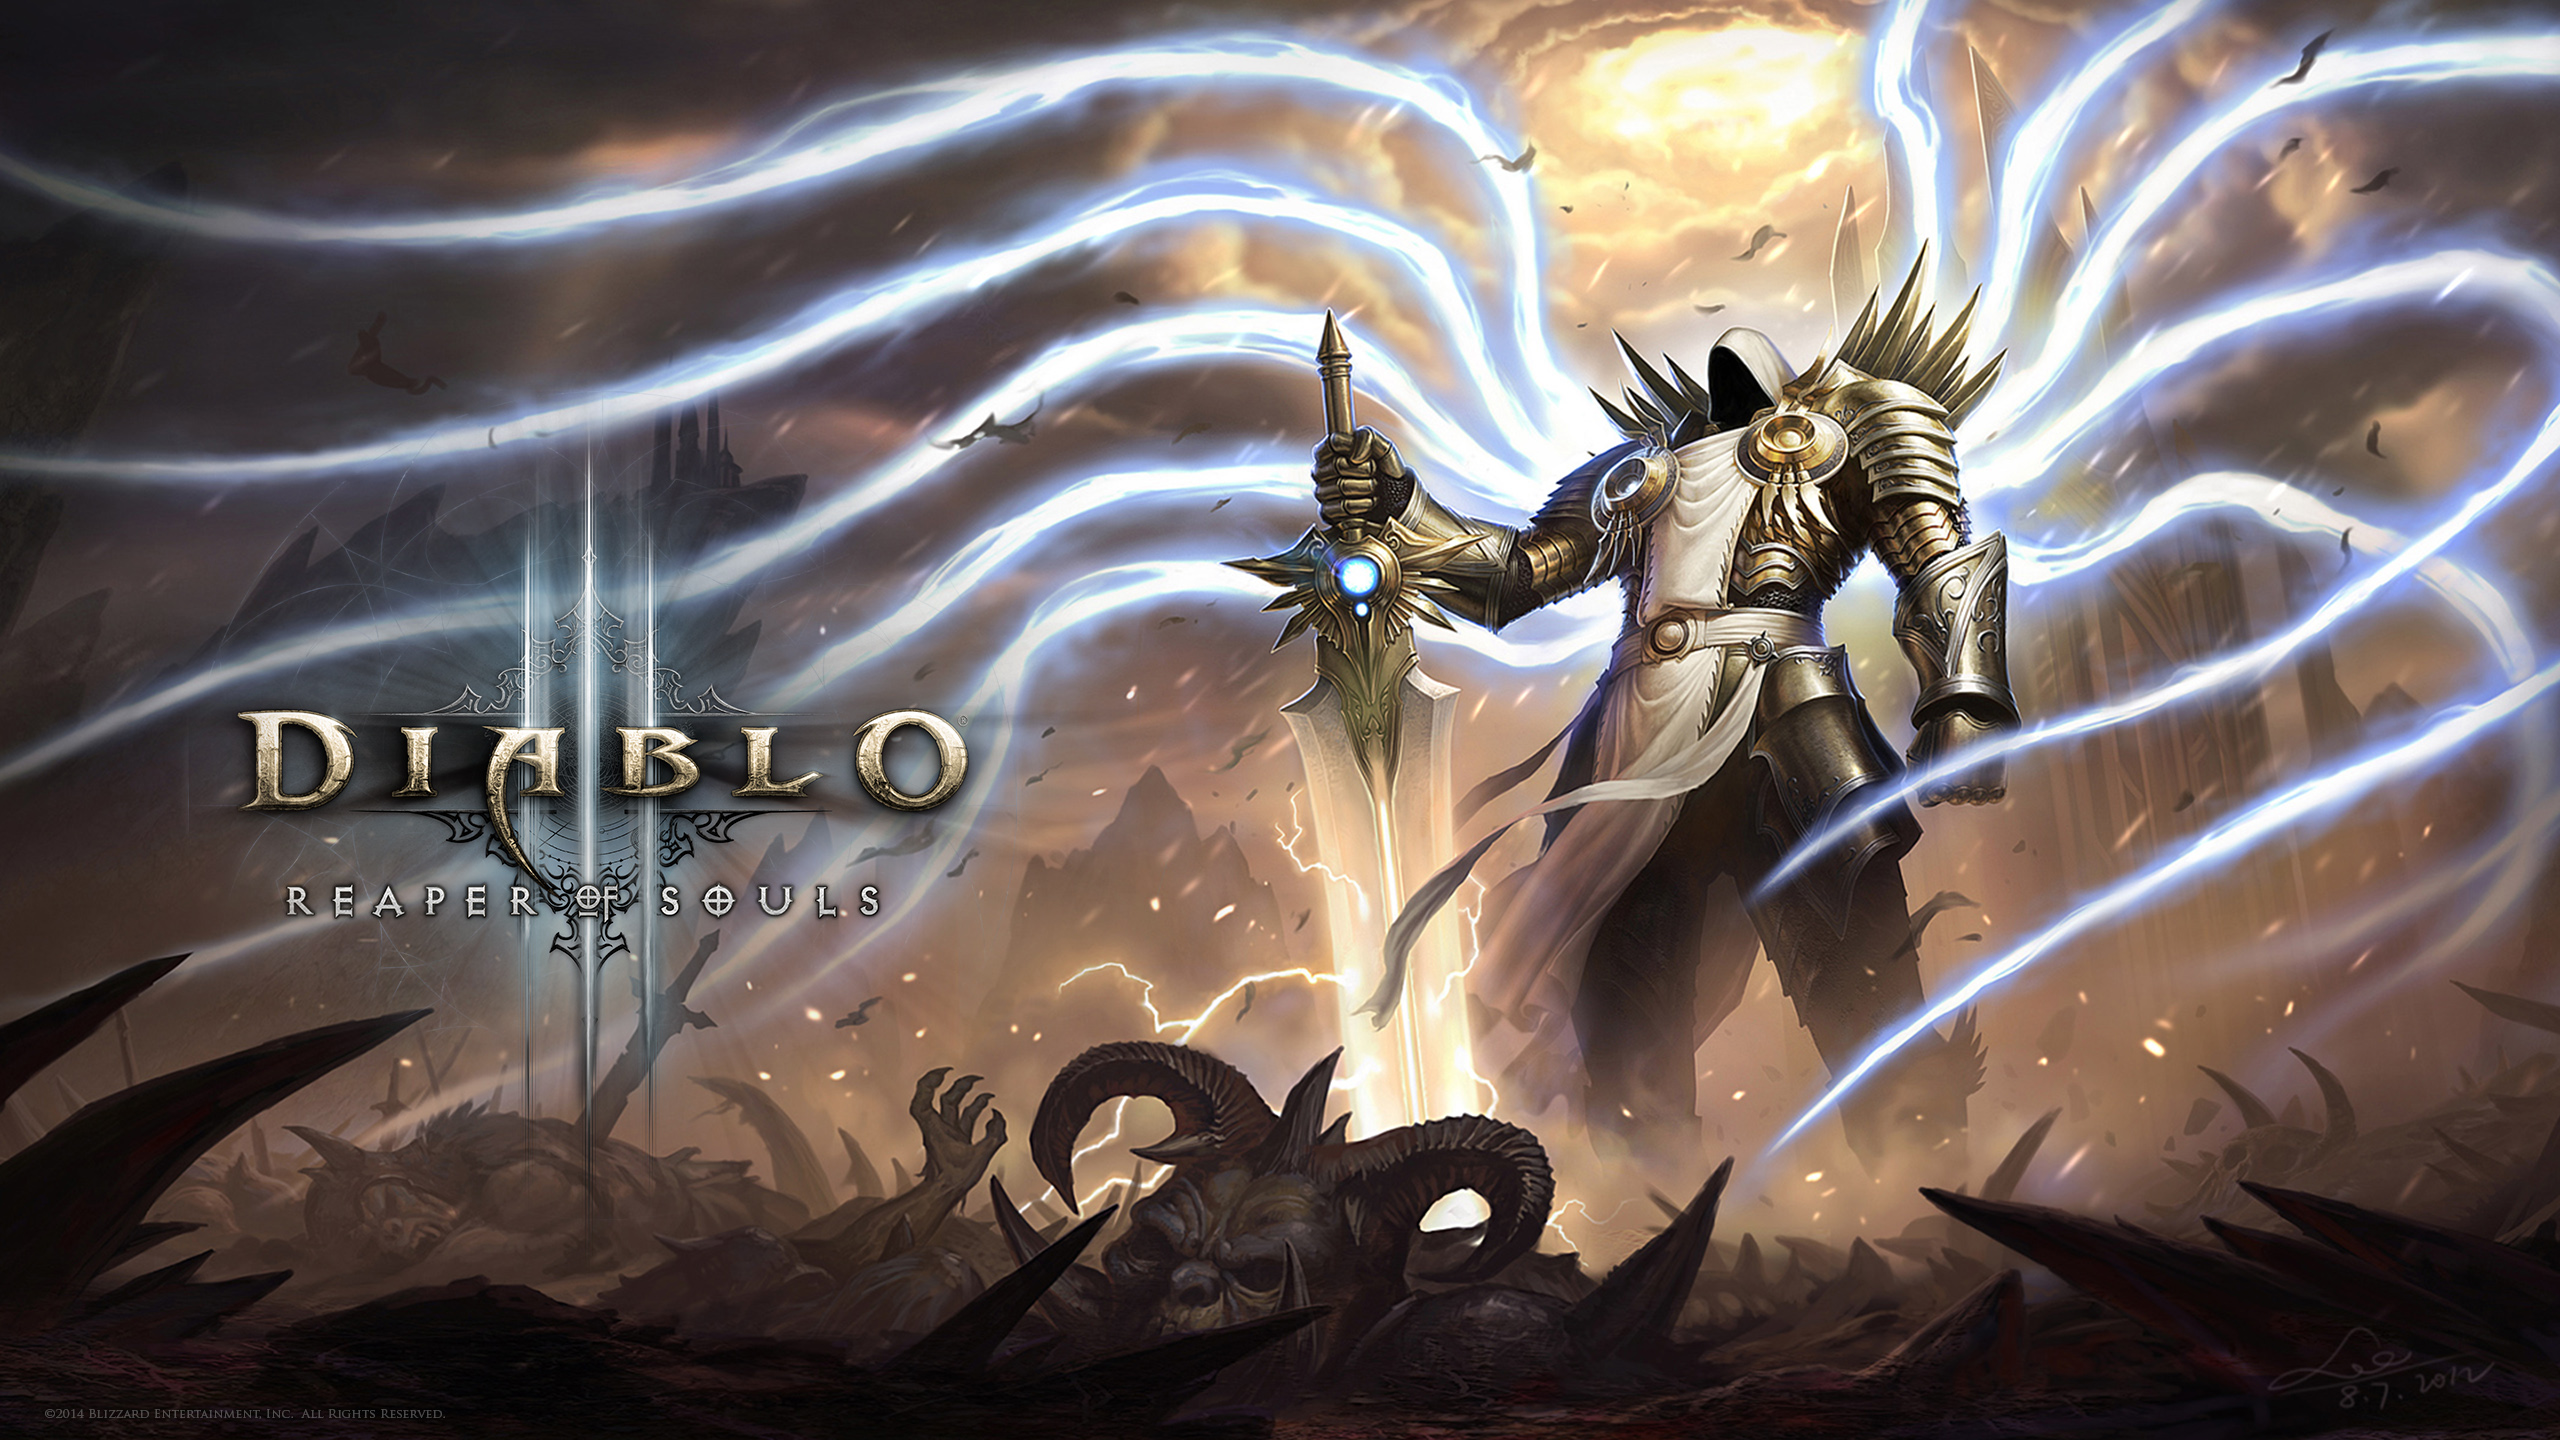 diablo wallpaper 2560x1440 - photo #13